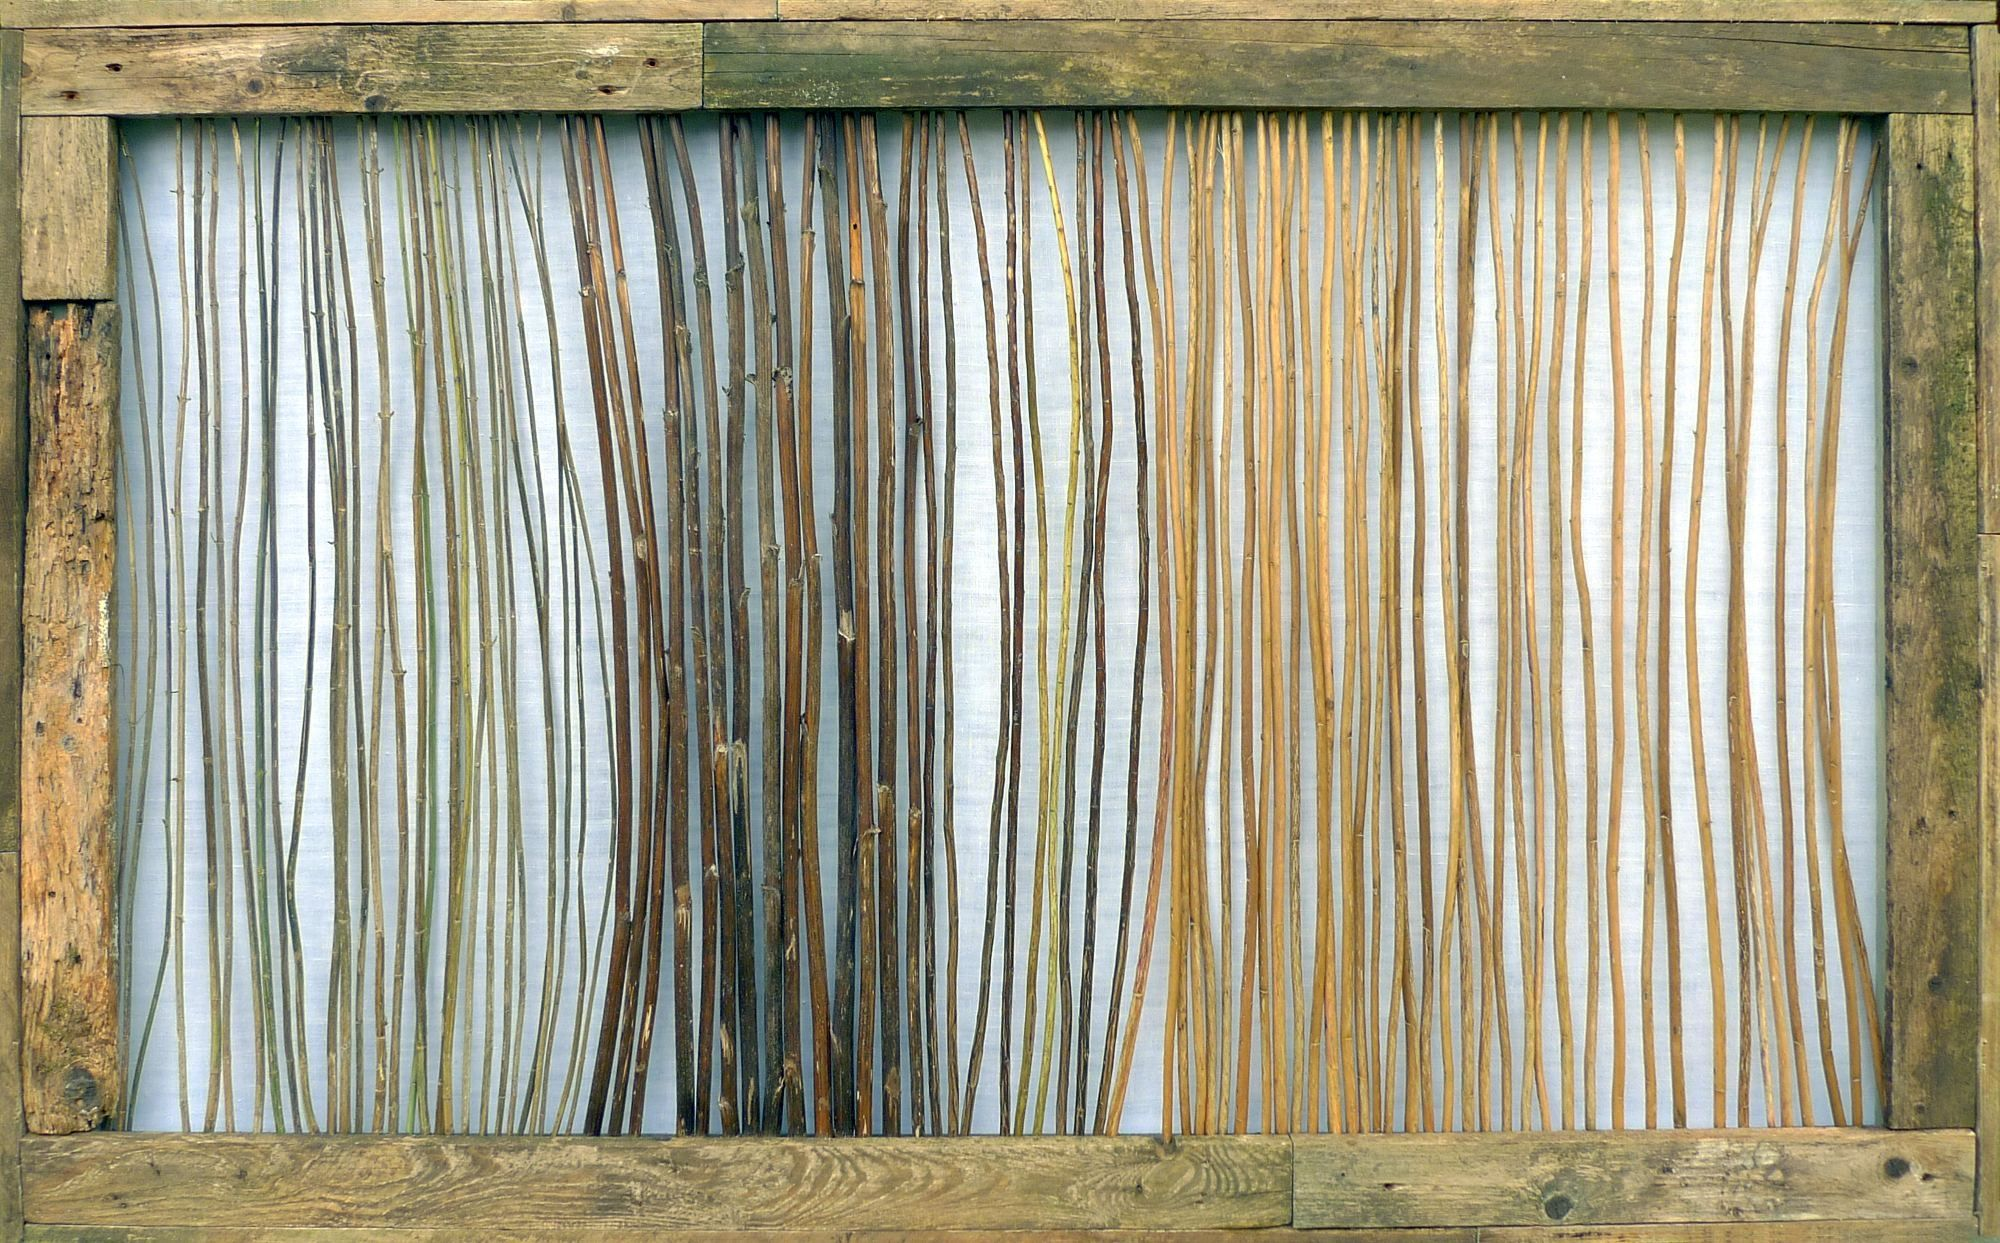 Jan Karpíšek, The Stems, dry stalks of nettles, goldenrods, hollyhocks et al., old planks from the garden, cca 101x166cm, 2015